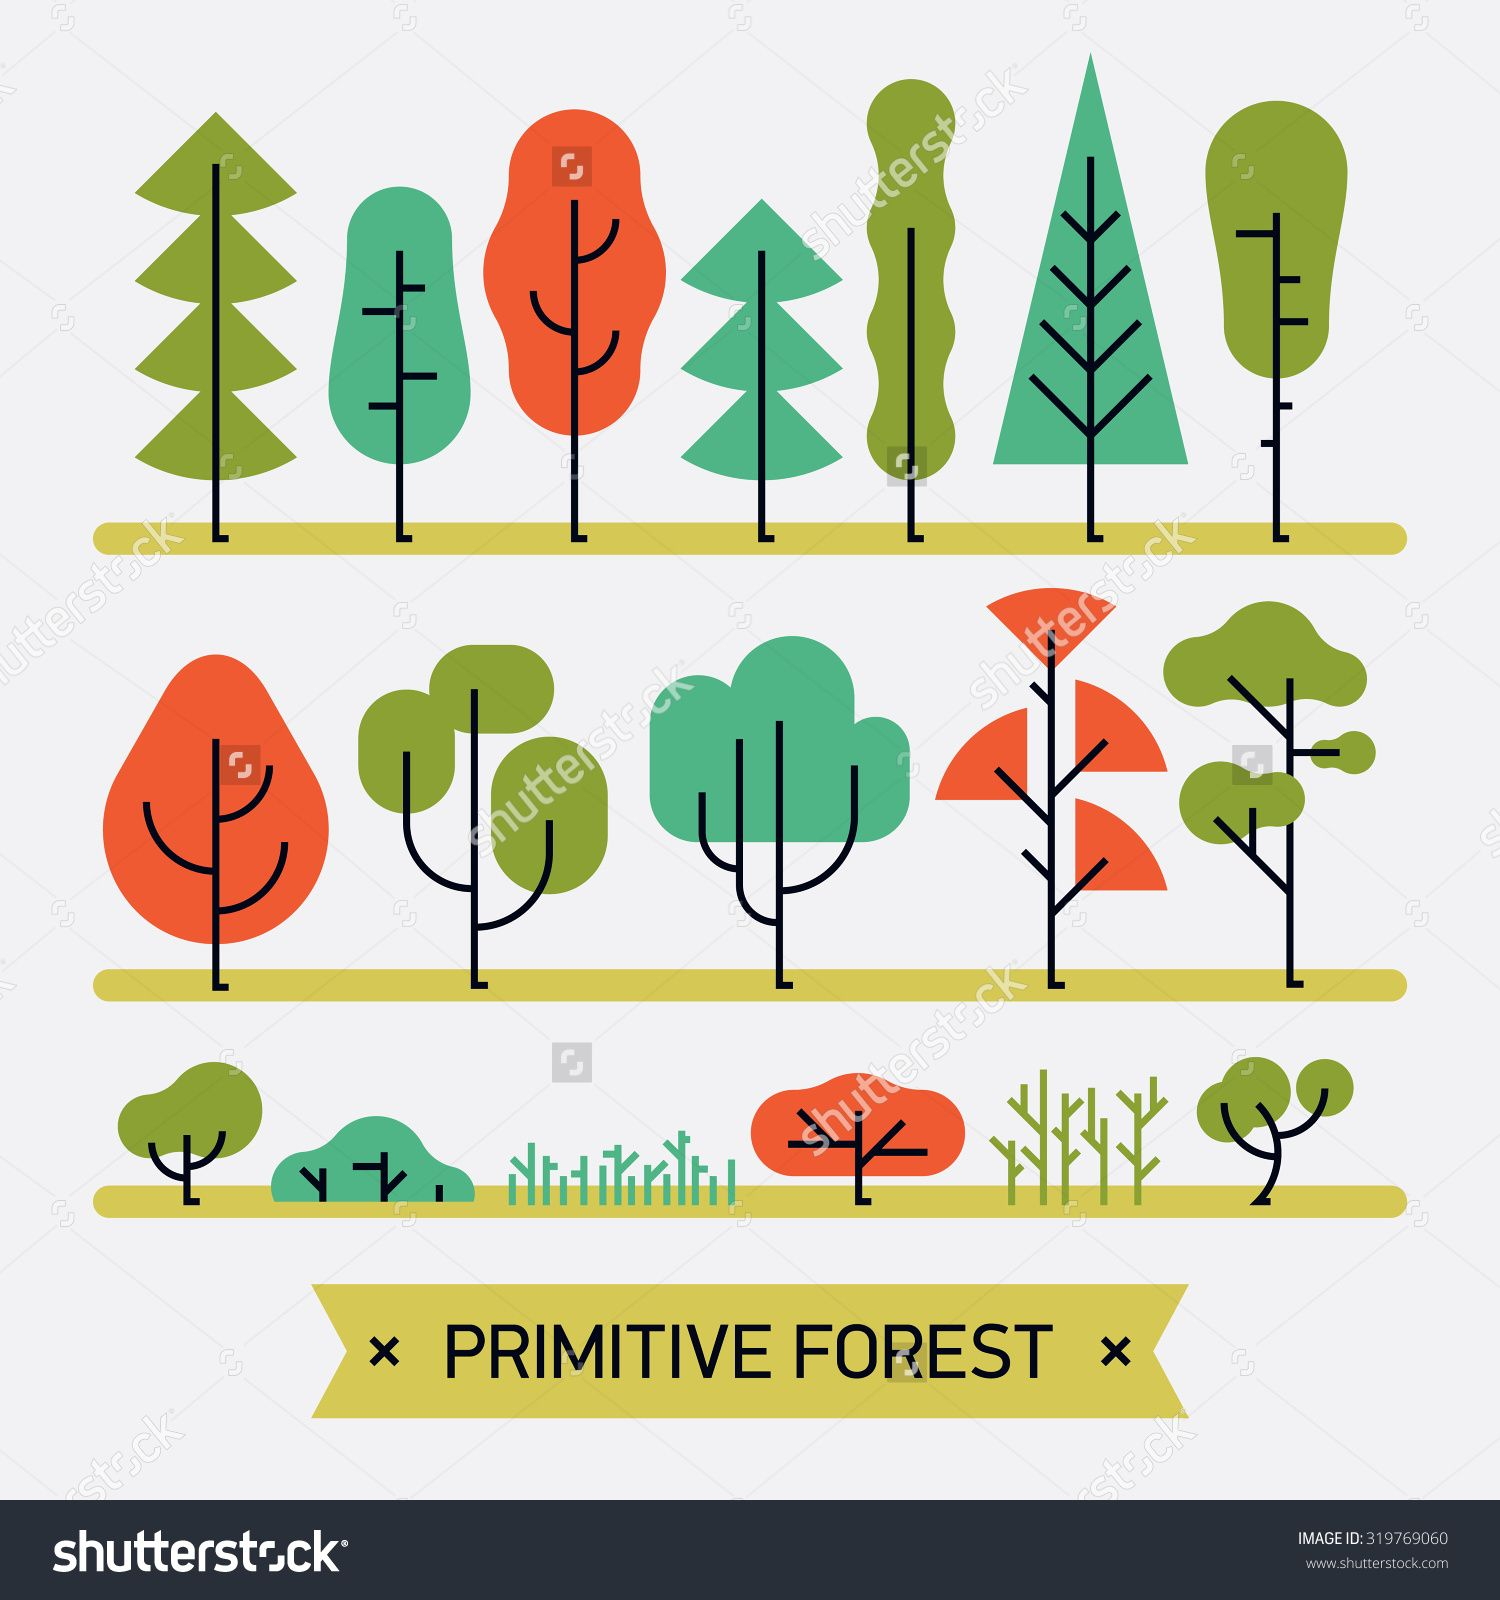 Beautiful And Simple Primitive Forms Flat Vector Forest Plats, Trees ...